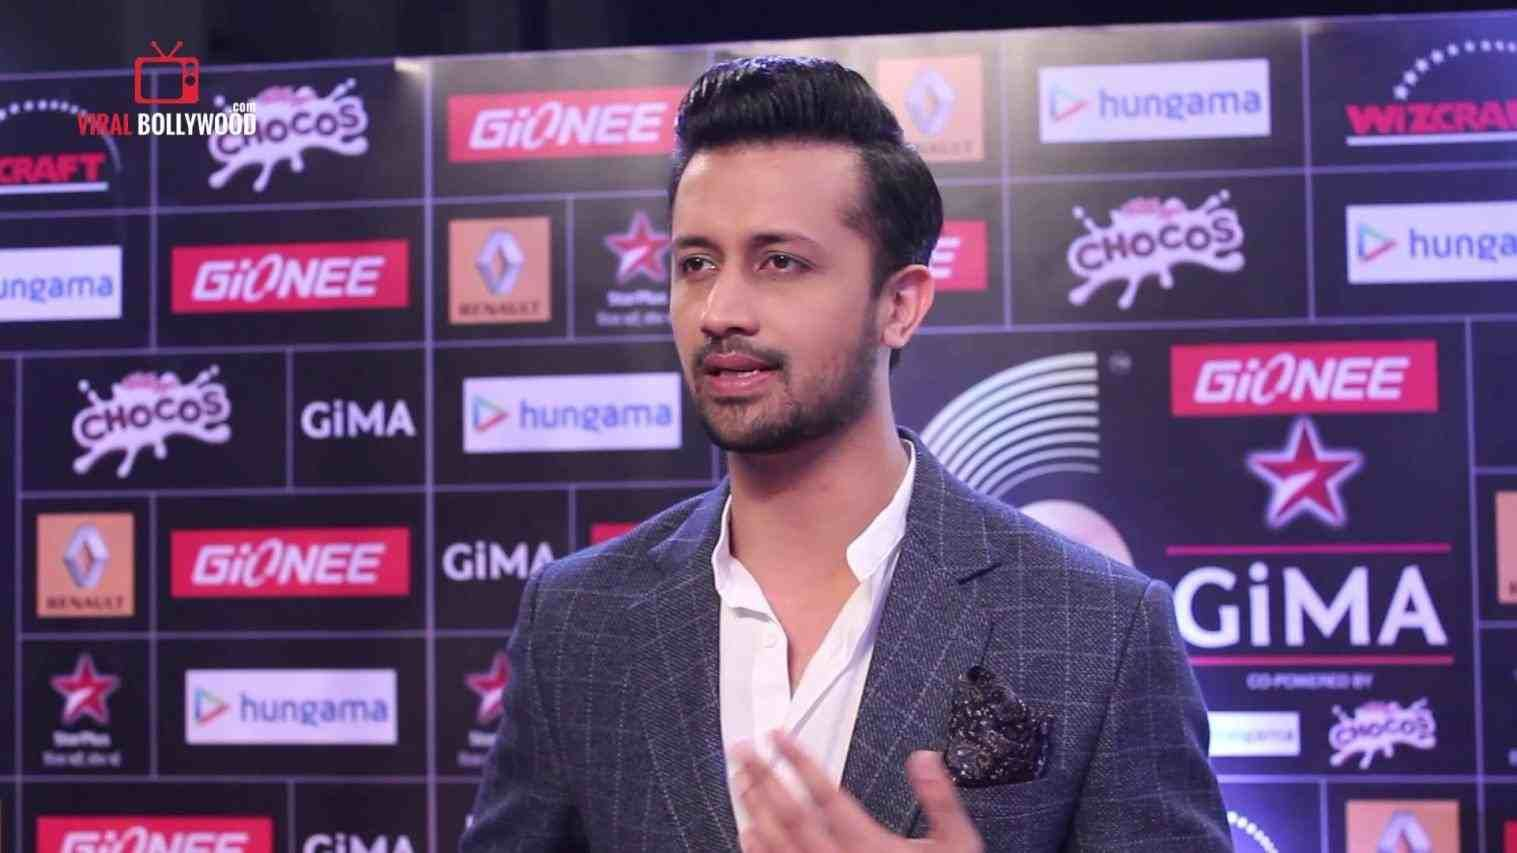 atif aslam hairstyle in gima awards | hair stylist and